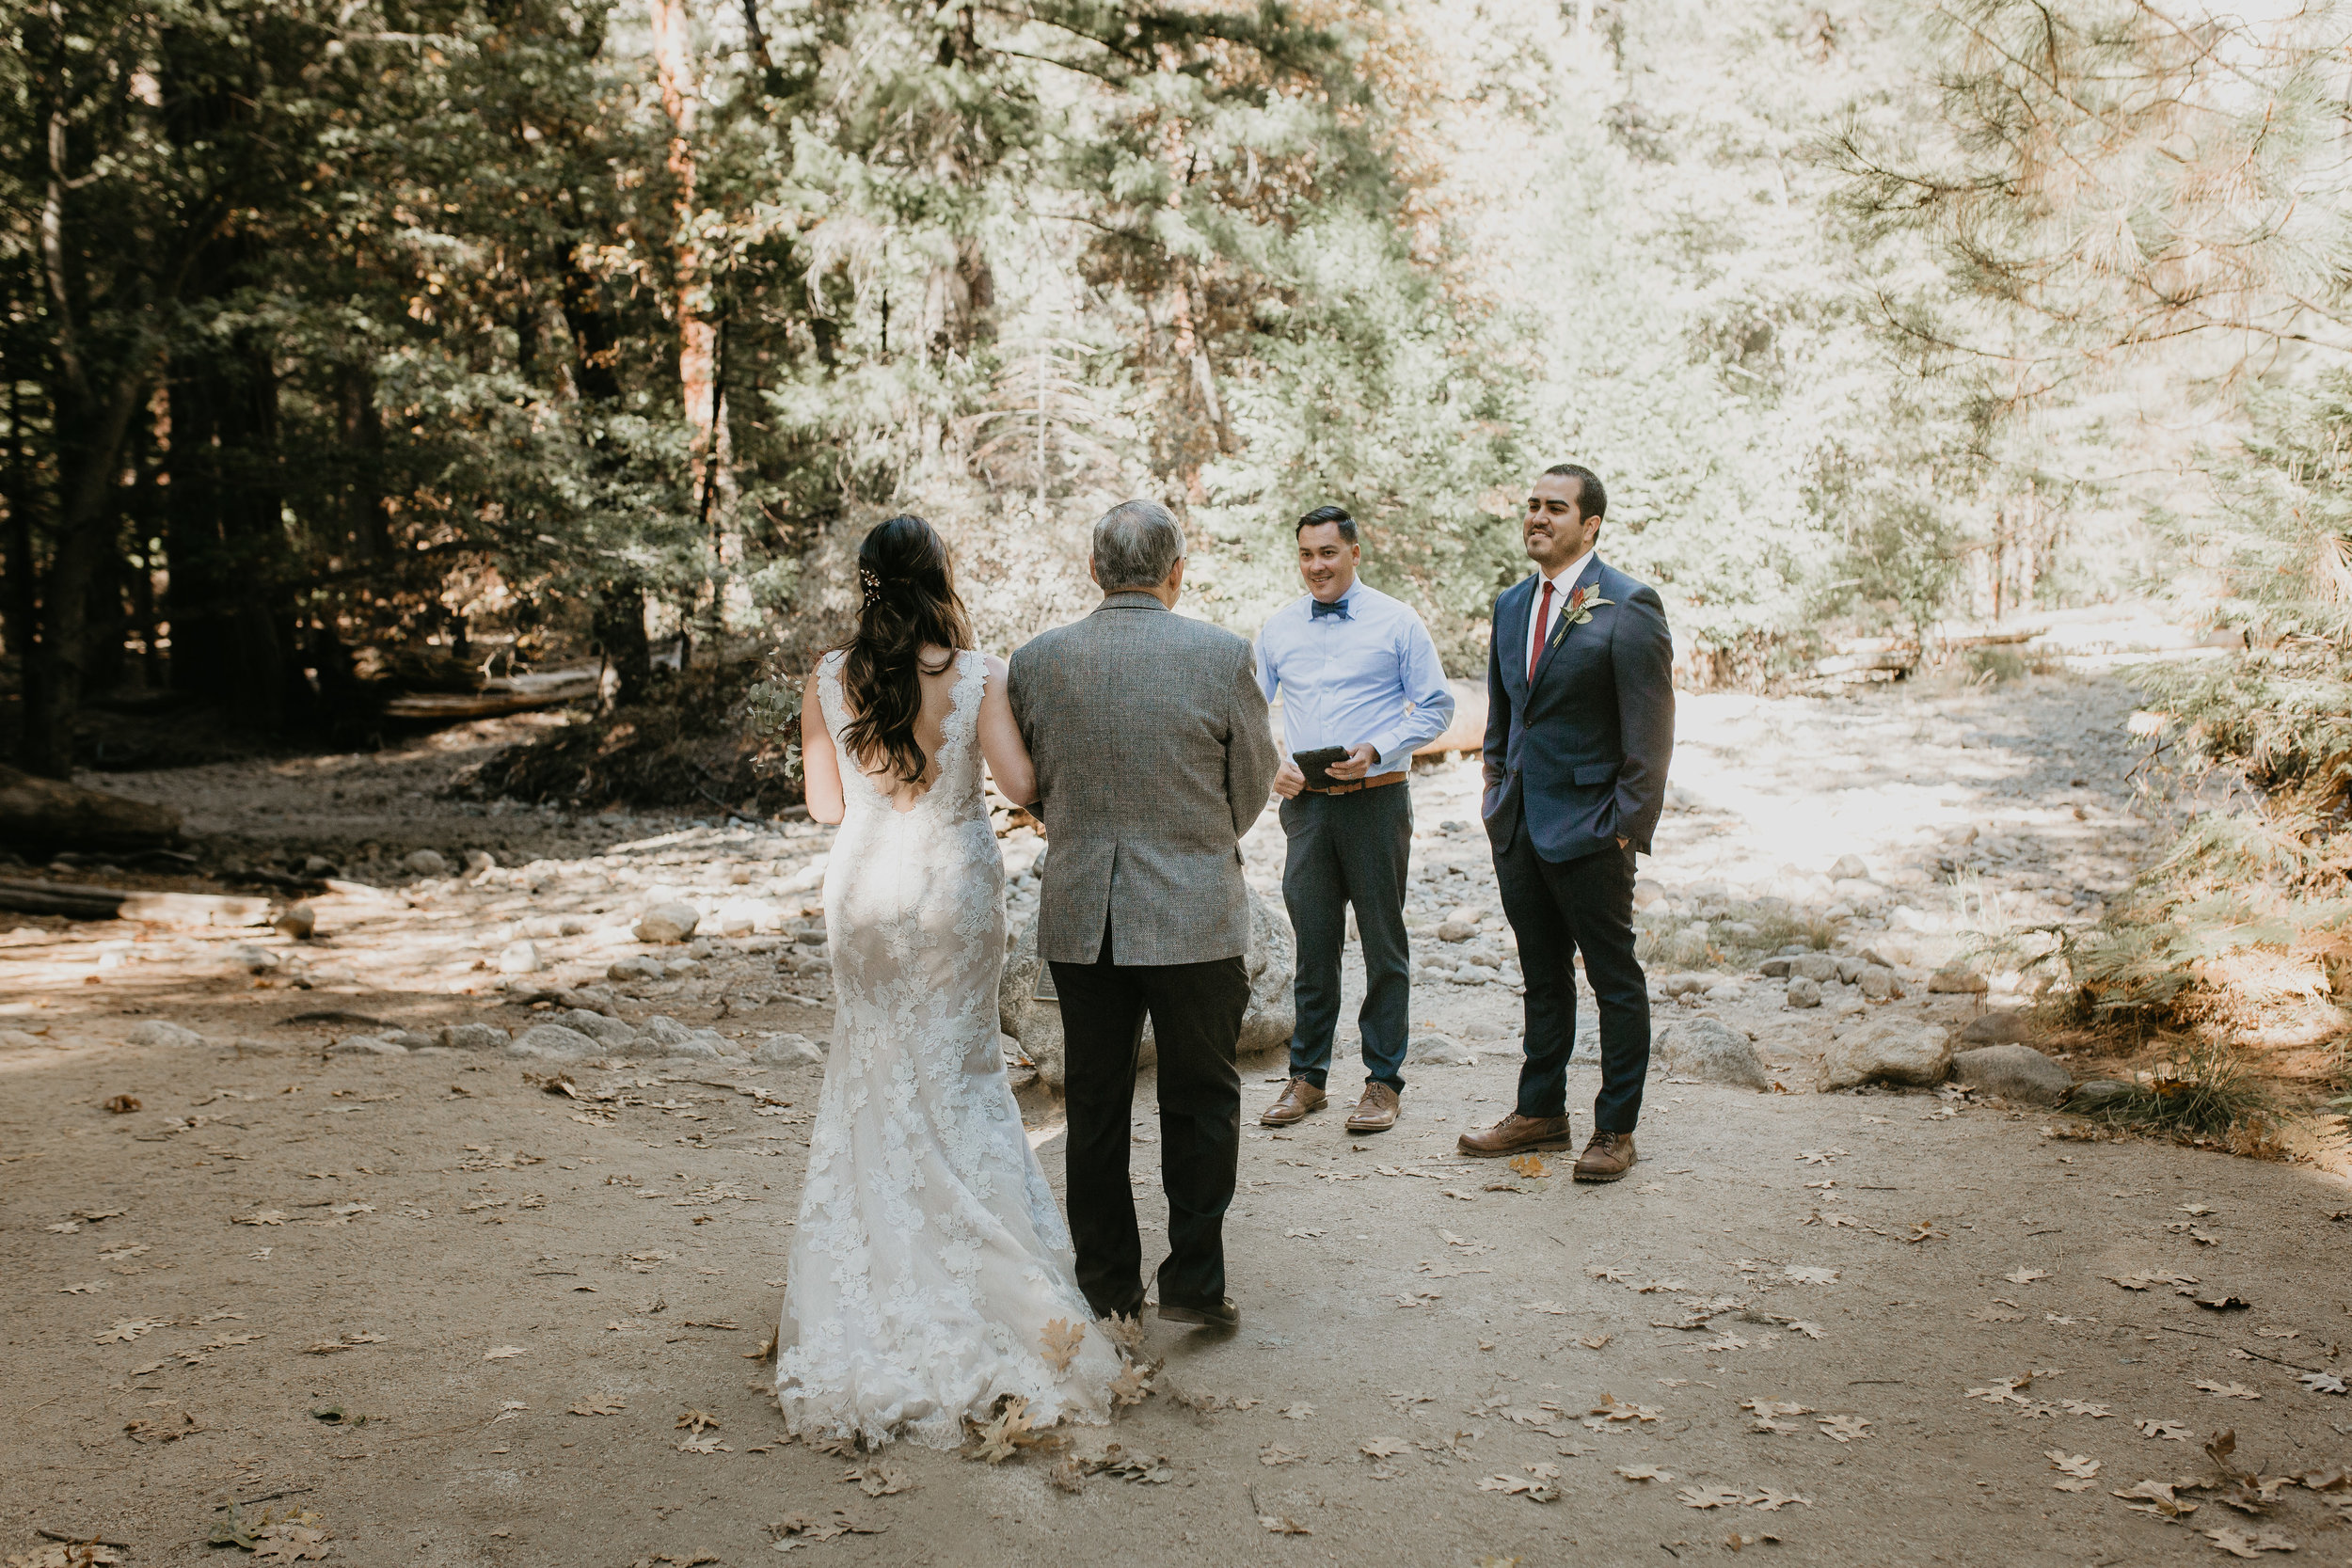 nicole-daacke-photography-intimate-elopement-wedding-yosemite-national-park-california-taft-point-sunset-photos-yosemite-valley-tunnel-view-first-look-sunrise-golden-granite-hiking-adventure-wedding-adventurous-elopement-photographer-43.jpg